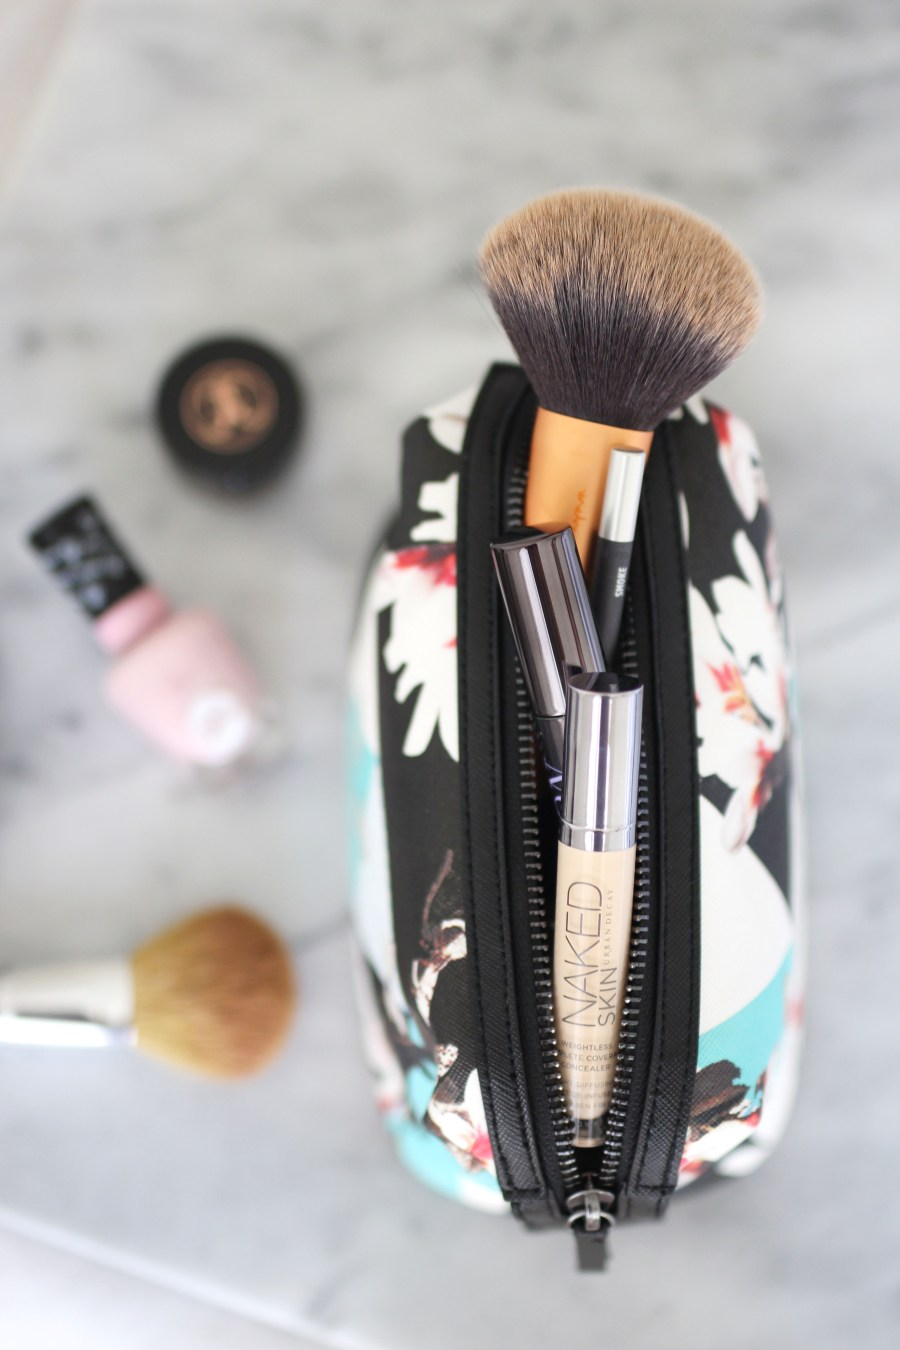 what's in my travel makeup bag, travel makeup must-haves, beauty products, lifestyle blog, Treats and Trends, cute cosmetic bag